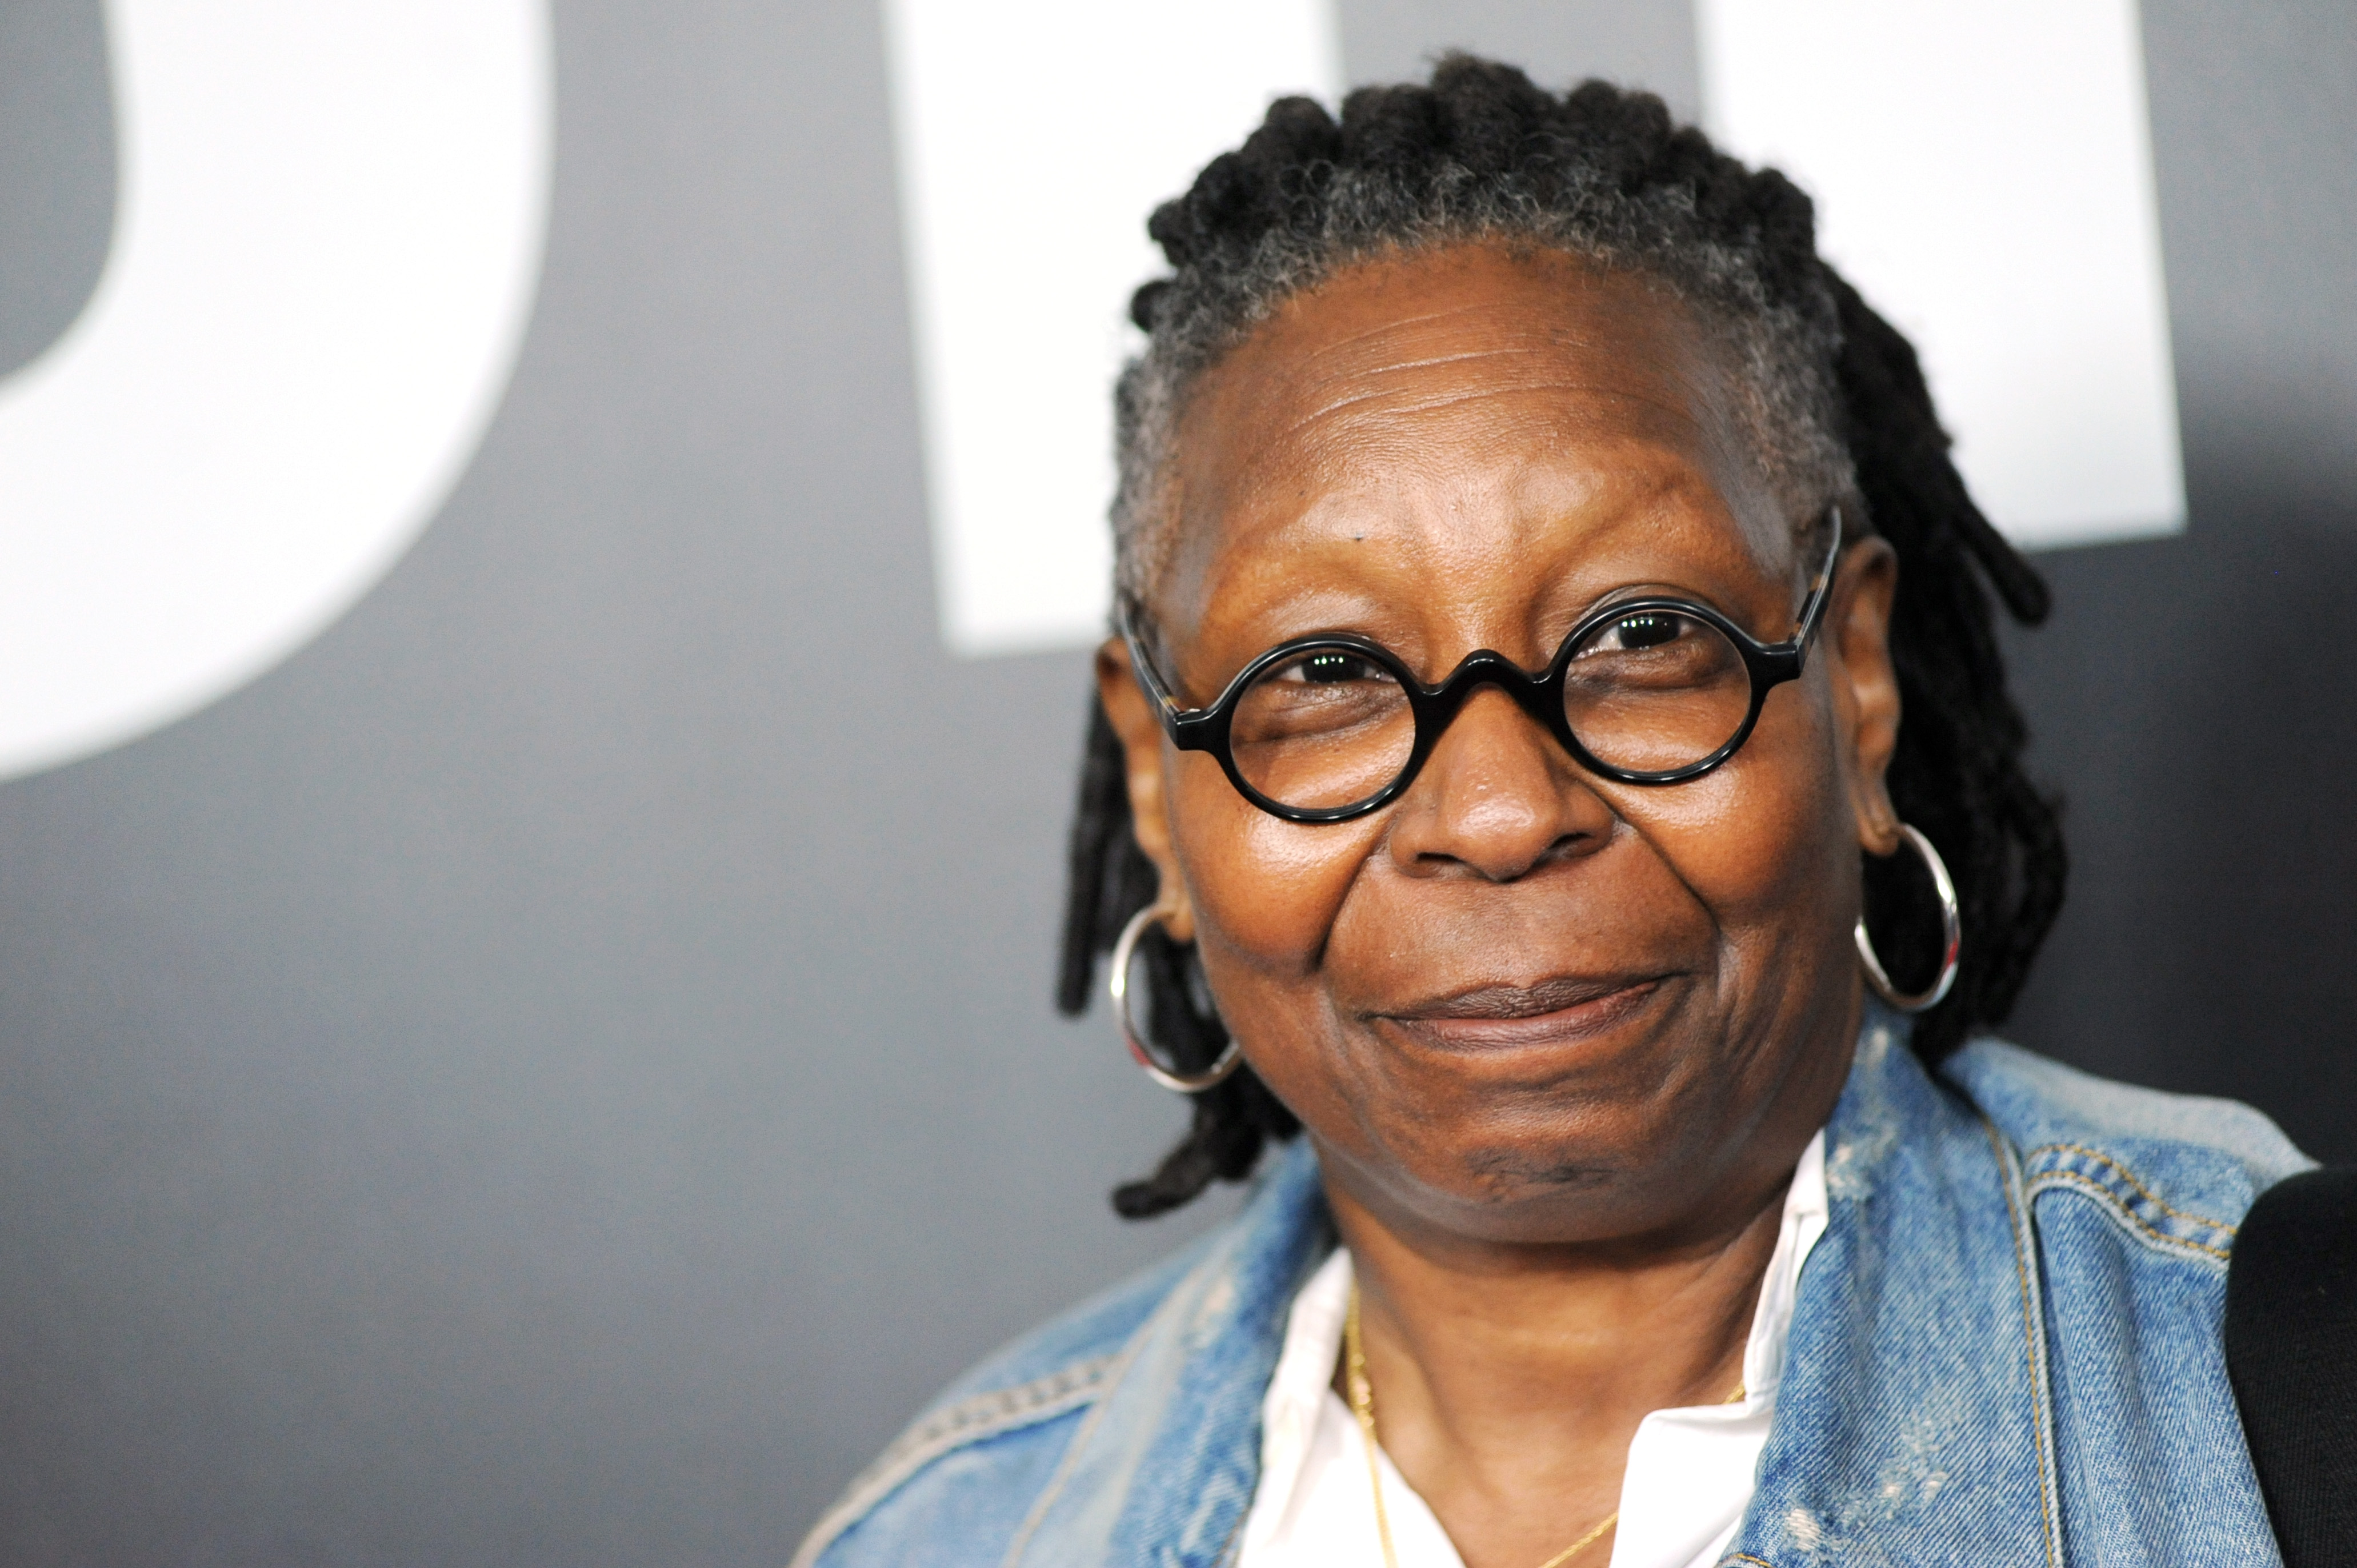 whoopi goldberg women deserve legal access to cannabis products